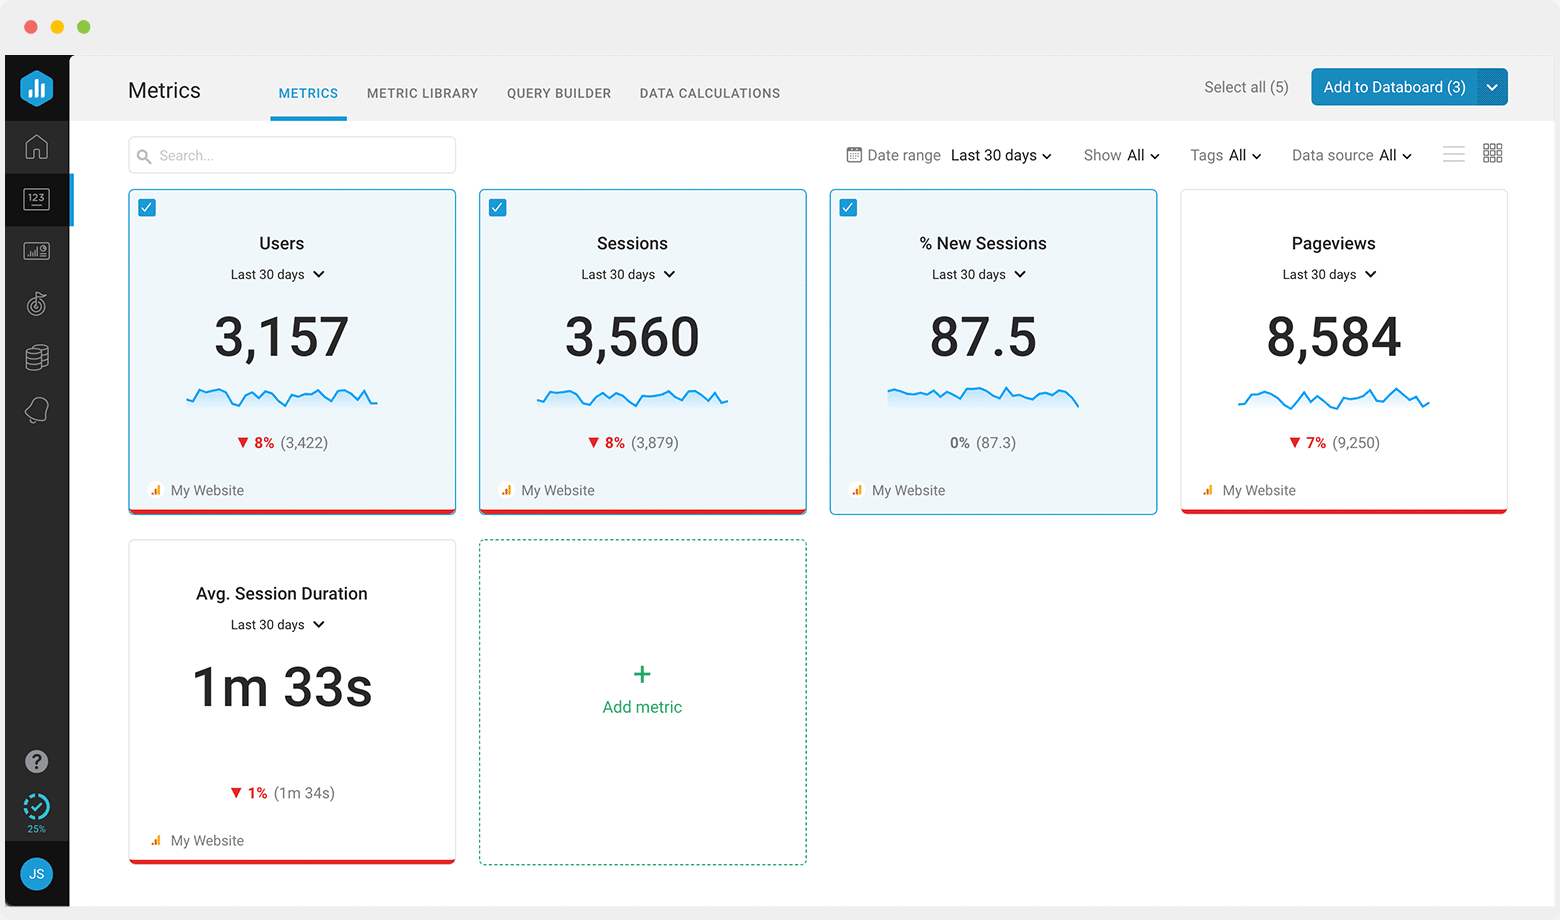 Add any metric to a dashboard with just a few clicks